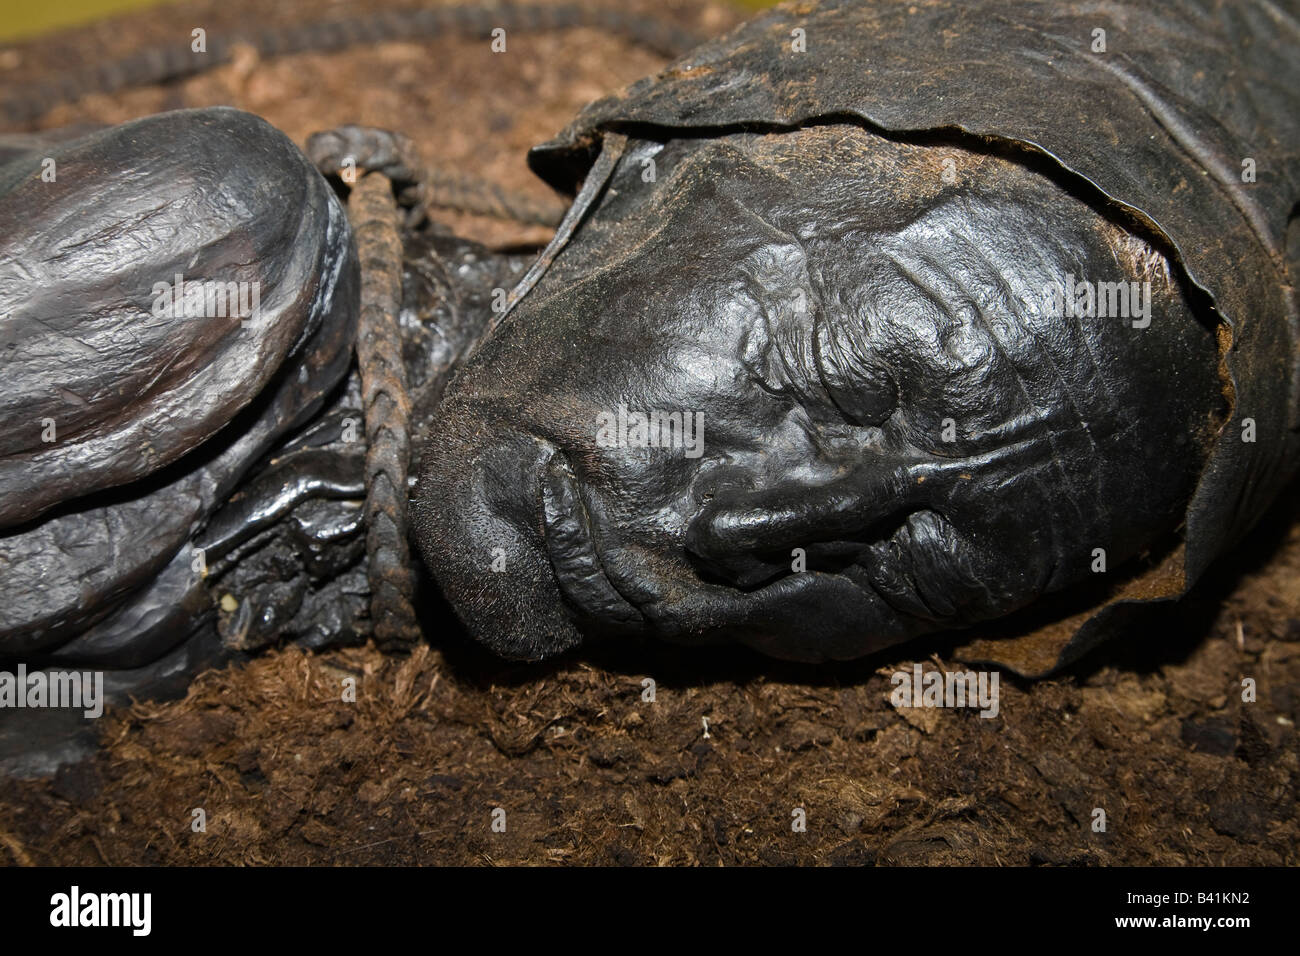 The finest example of a preserved 'bog body' - The Tollund Man at Silkeborg Museum, Jutland, Denmark - Stock Image